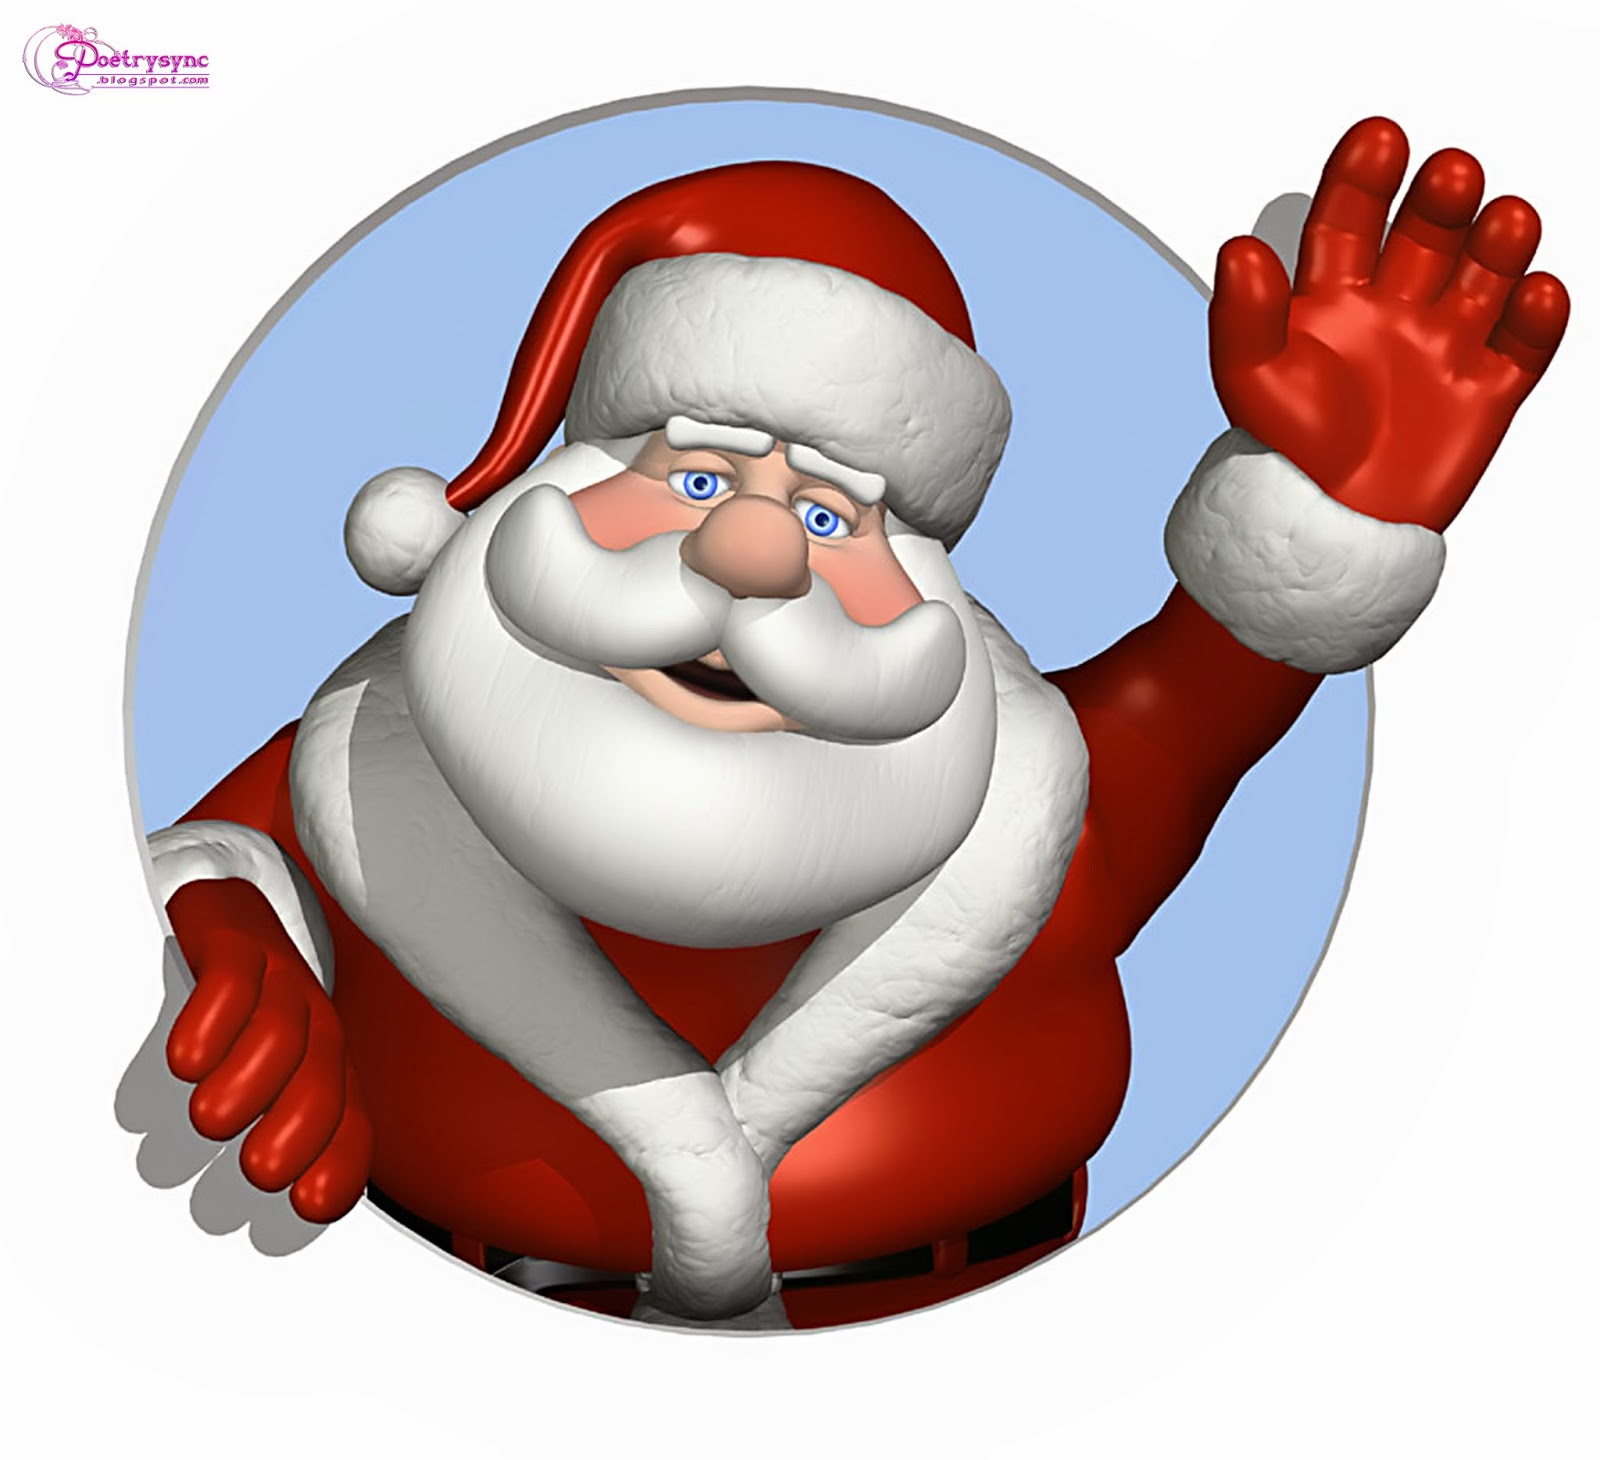 Xmas cliparts graphic free download Santa Claus HD Cliparts and Pictures for Christmas Festival | 26 ... graphic free download